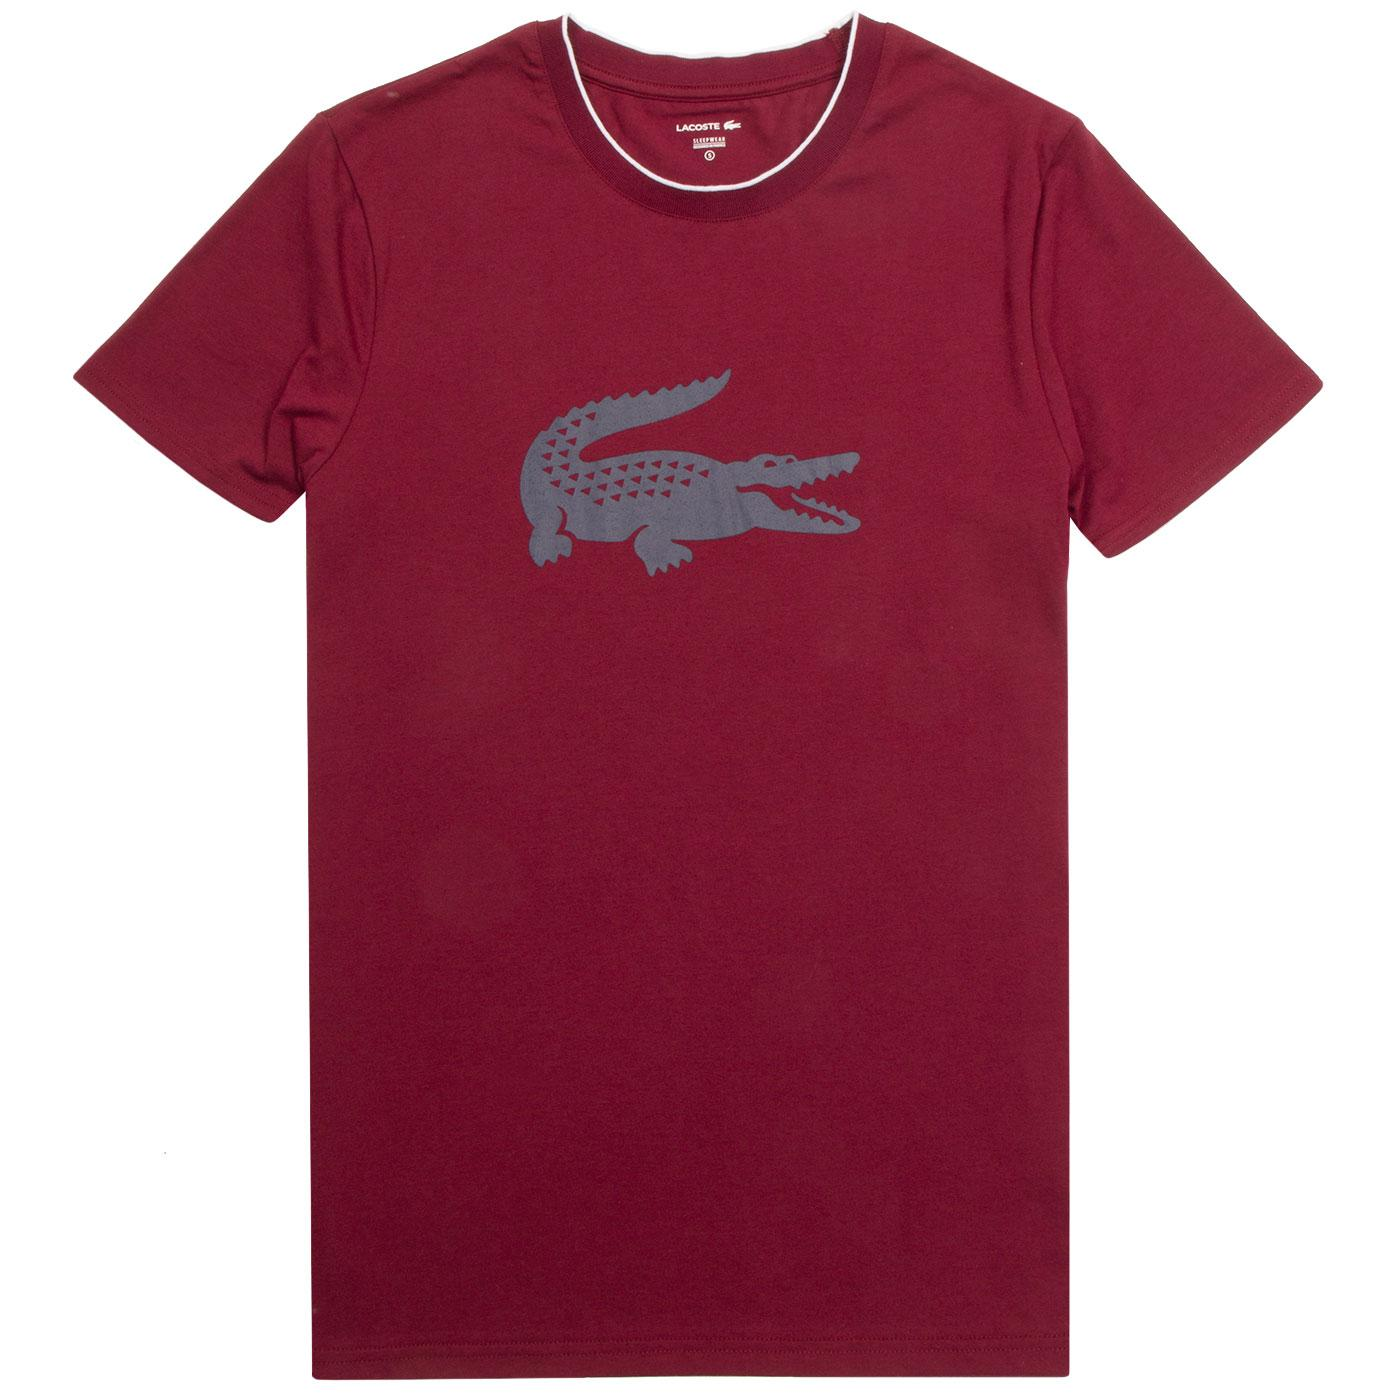 LACOSTE Retro Tipped Crew Neck Loungewear Tee DR